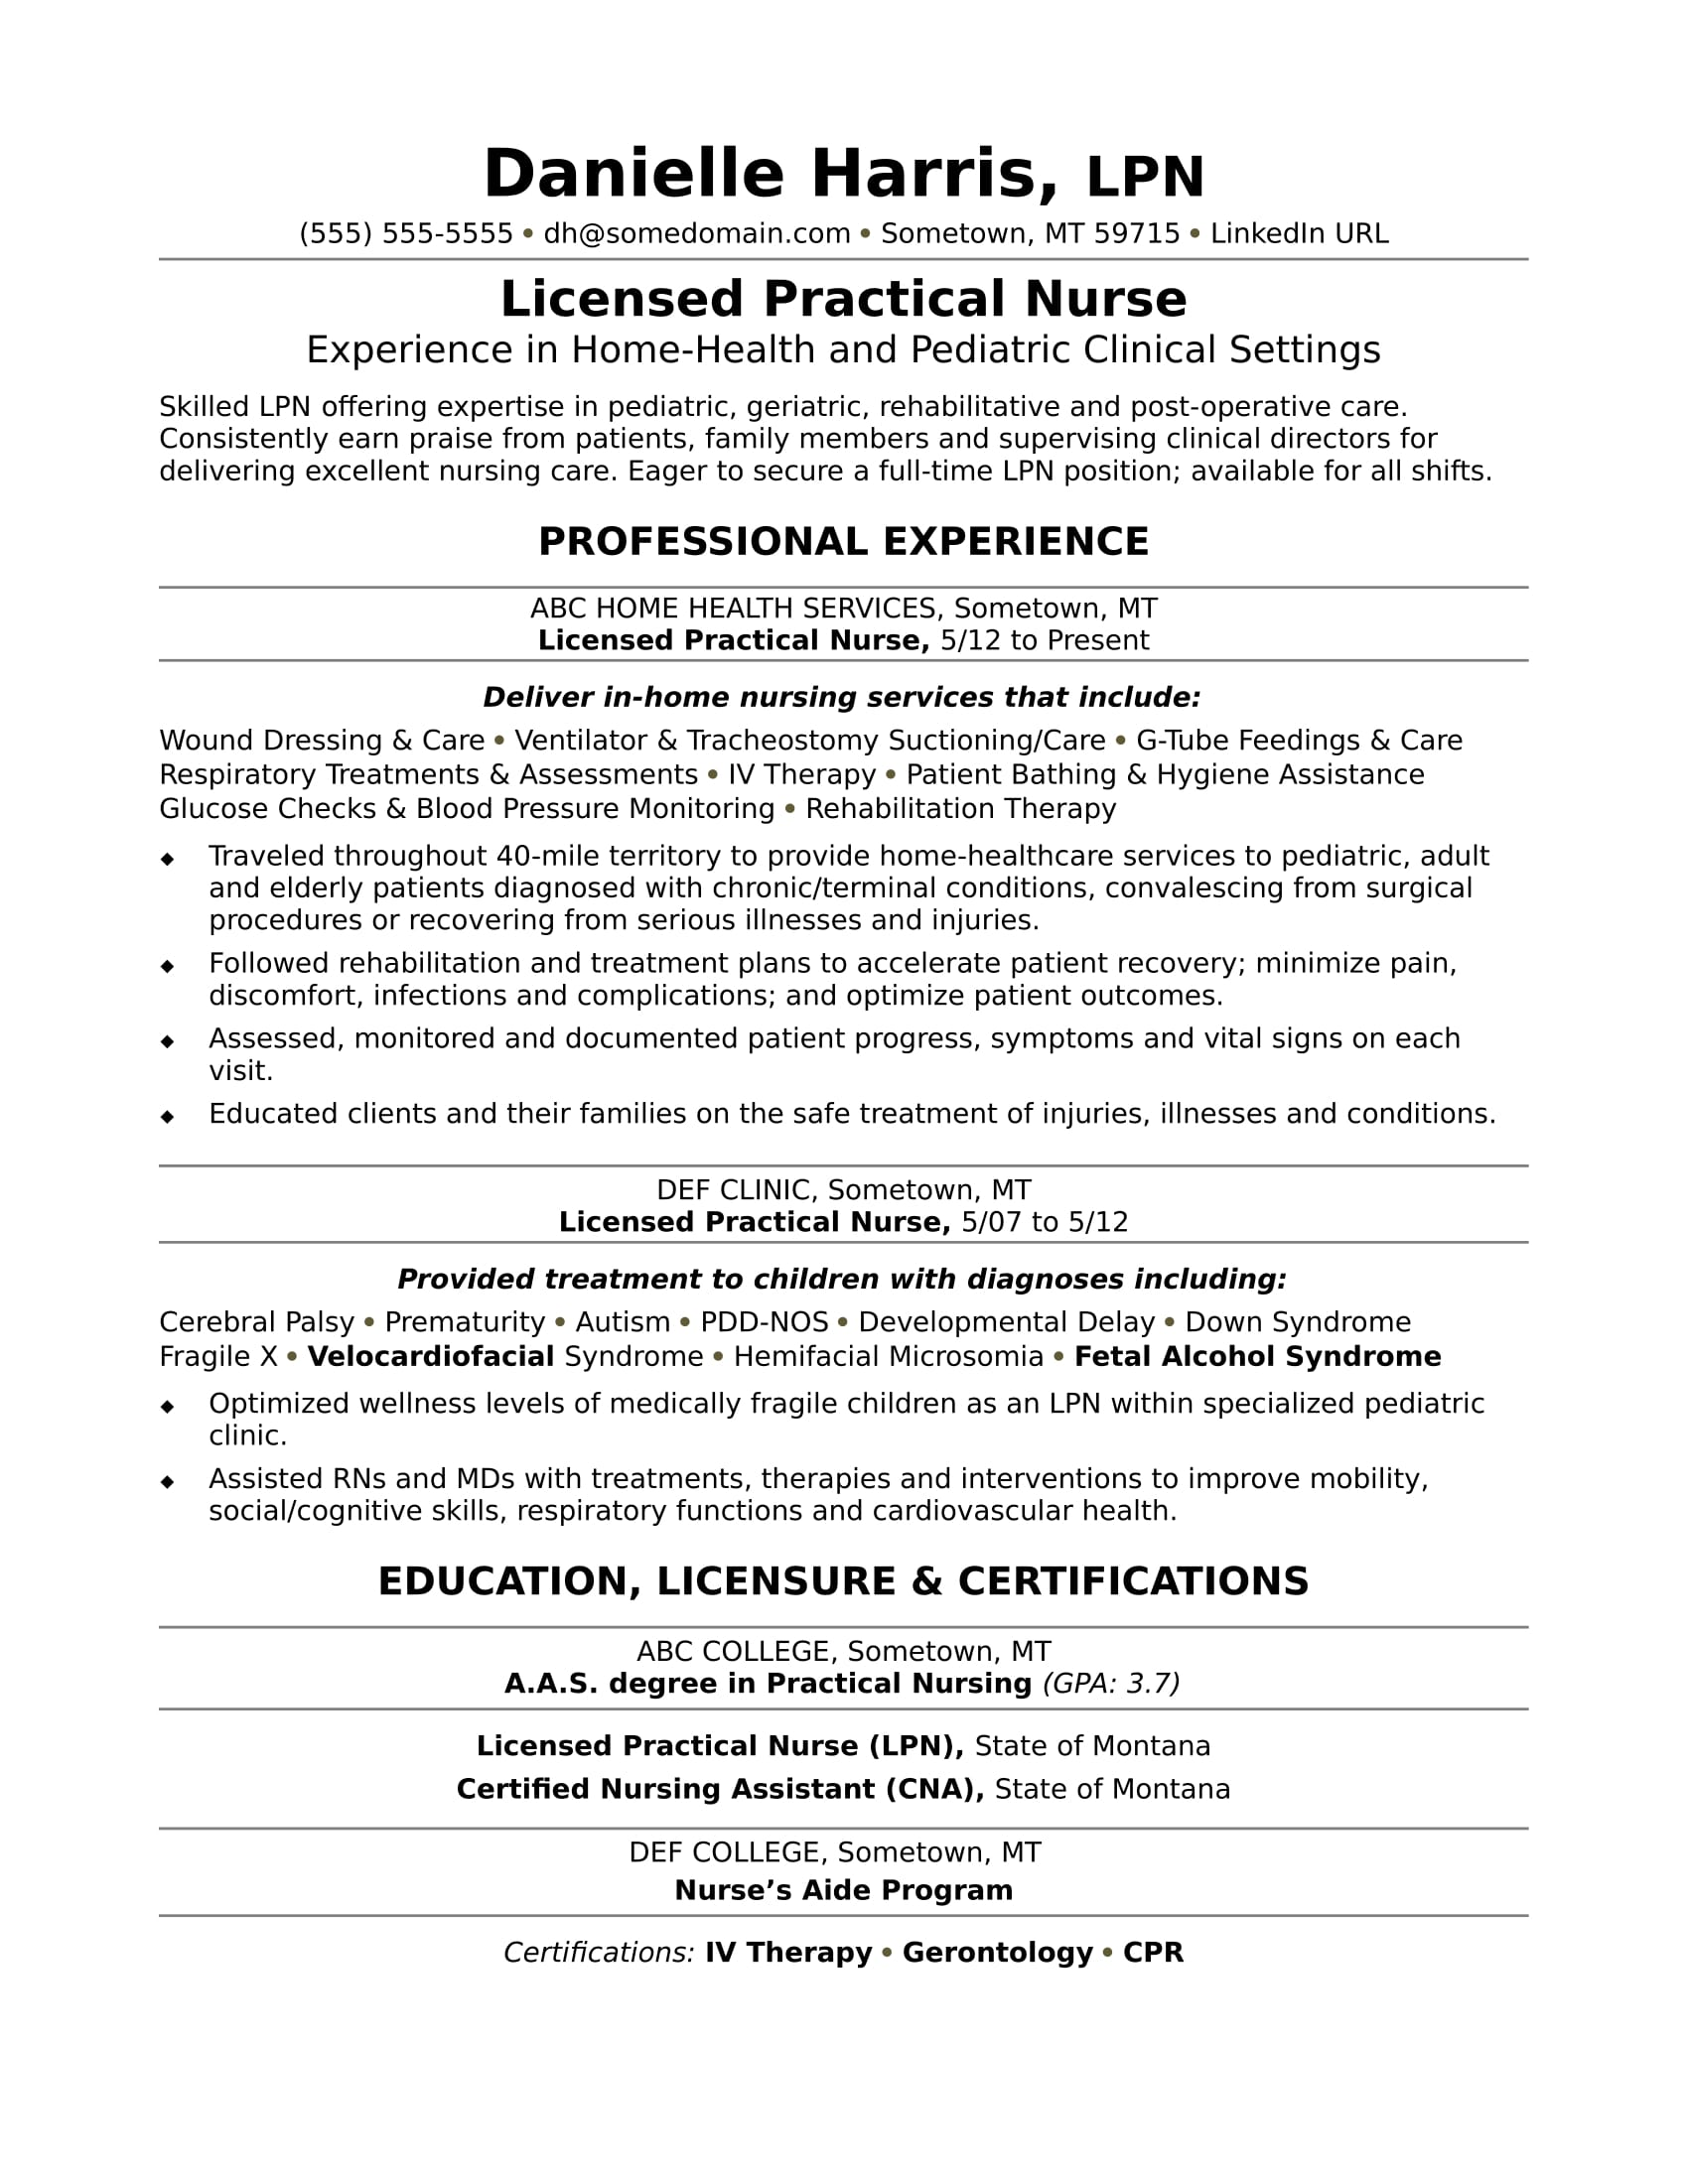 Amazing Licensed Practical Nurse Resume Sample Regard To Sample Lpn Resume